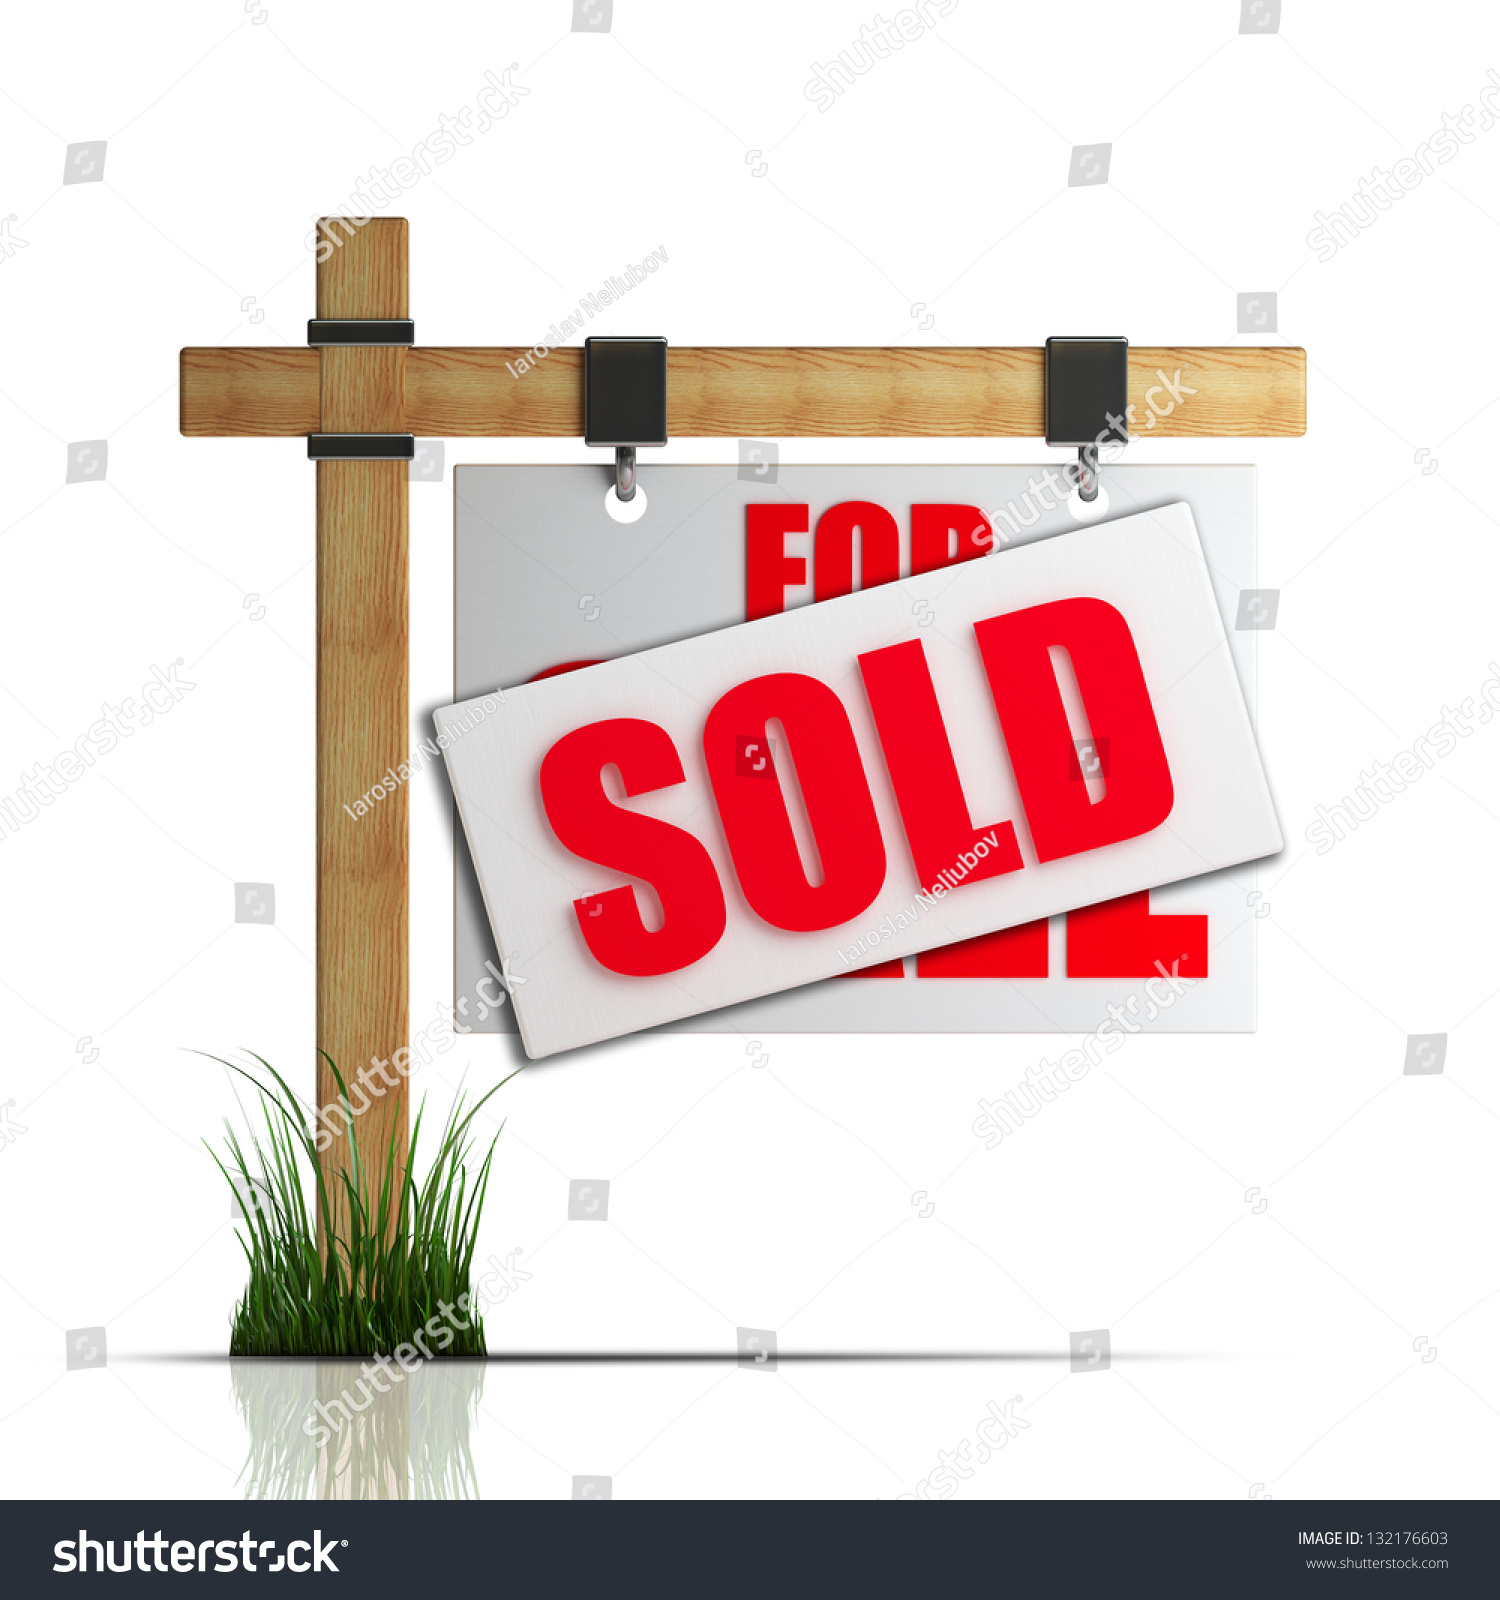 For Sale Sold Sign: Sale Sold Sign Isolated On White Stock Illustration